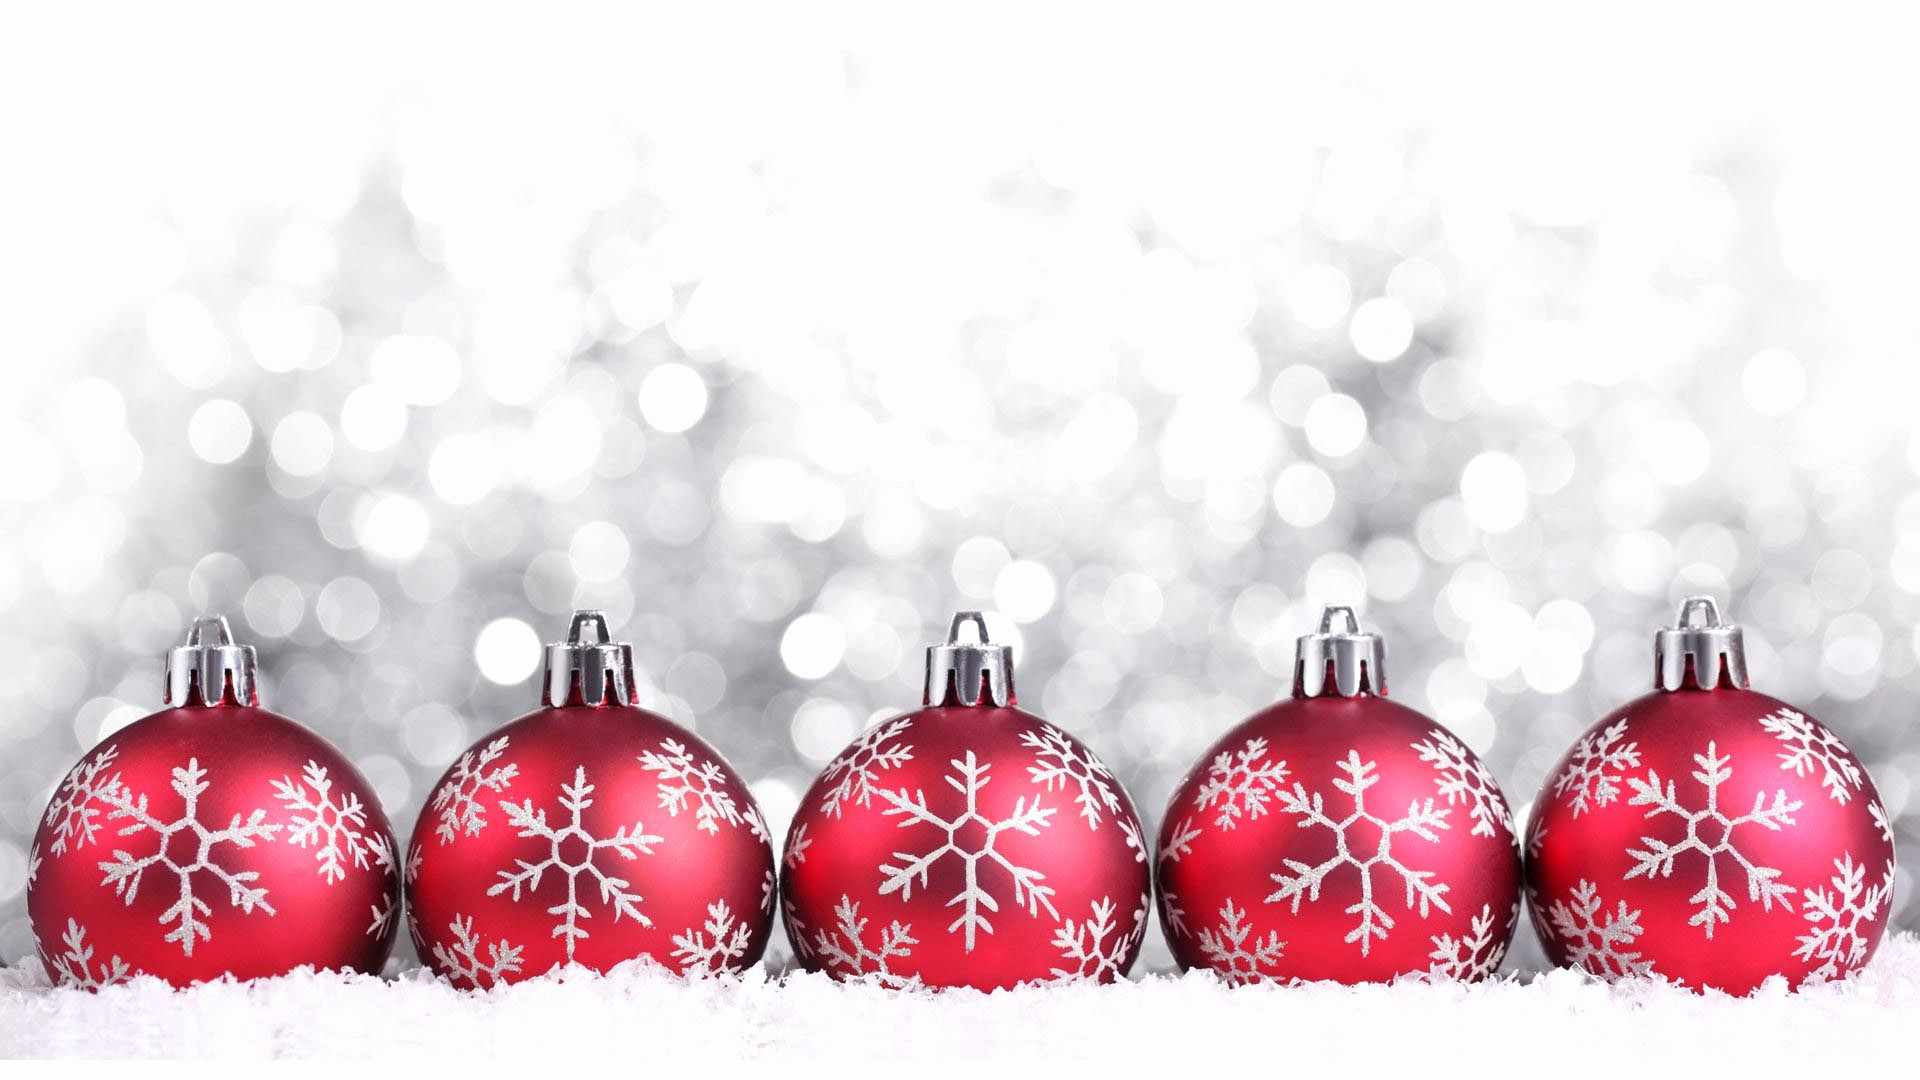 Christmas wallpapers tumblr 75 background pictures - Hd christmas wallpapers 1080p ...